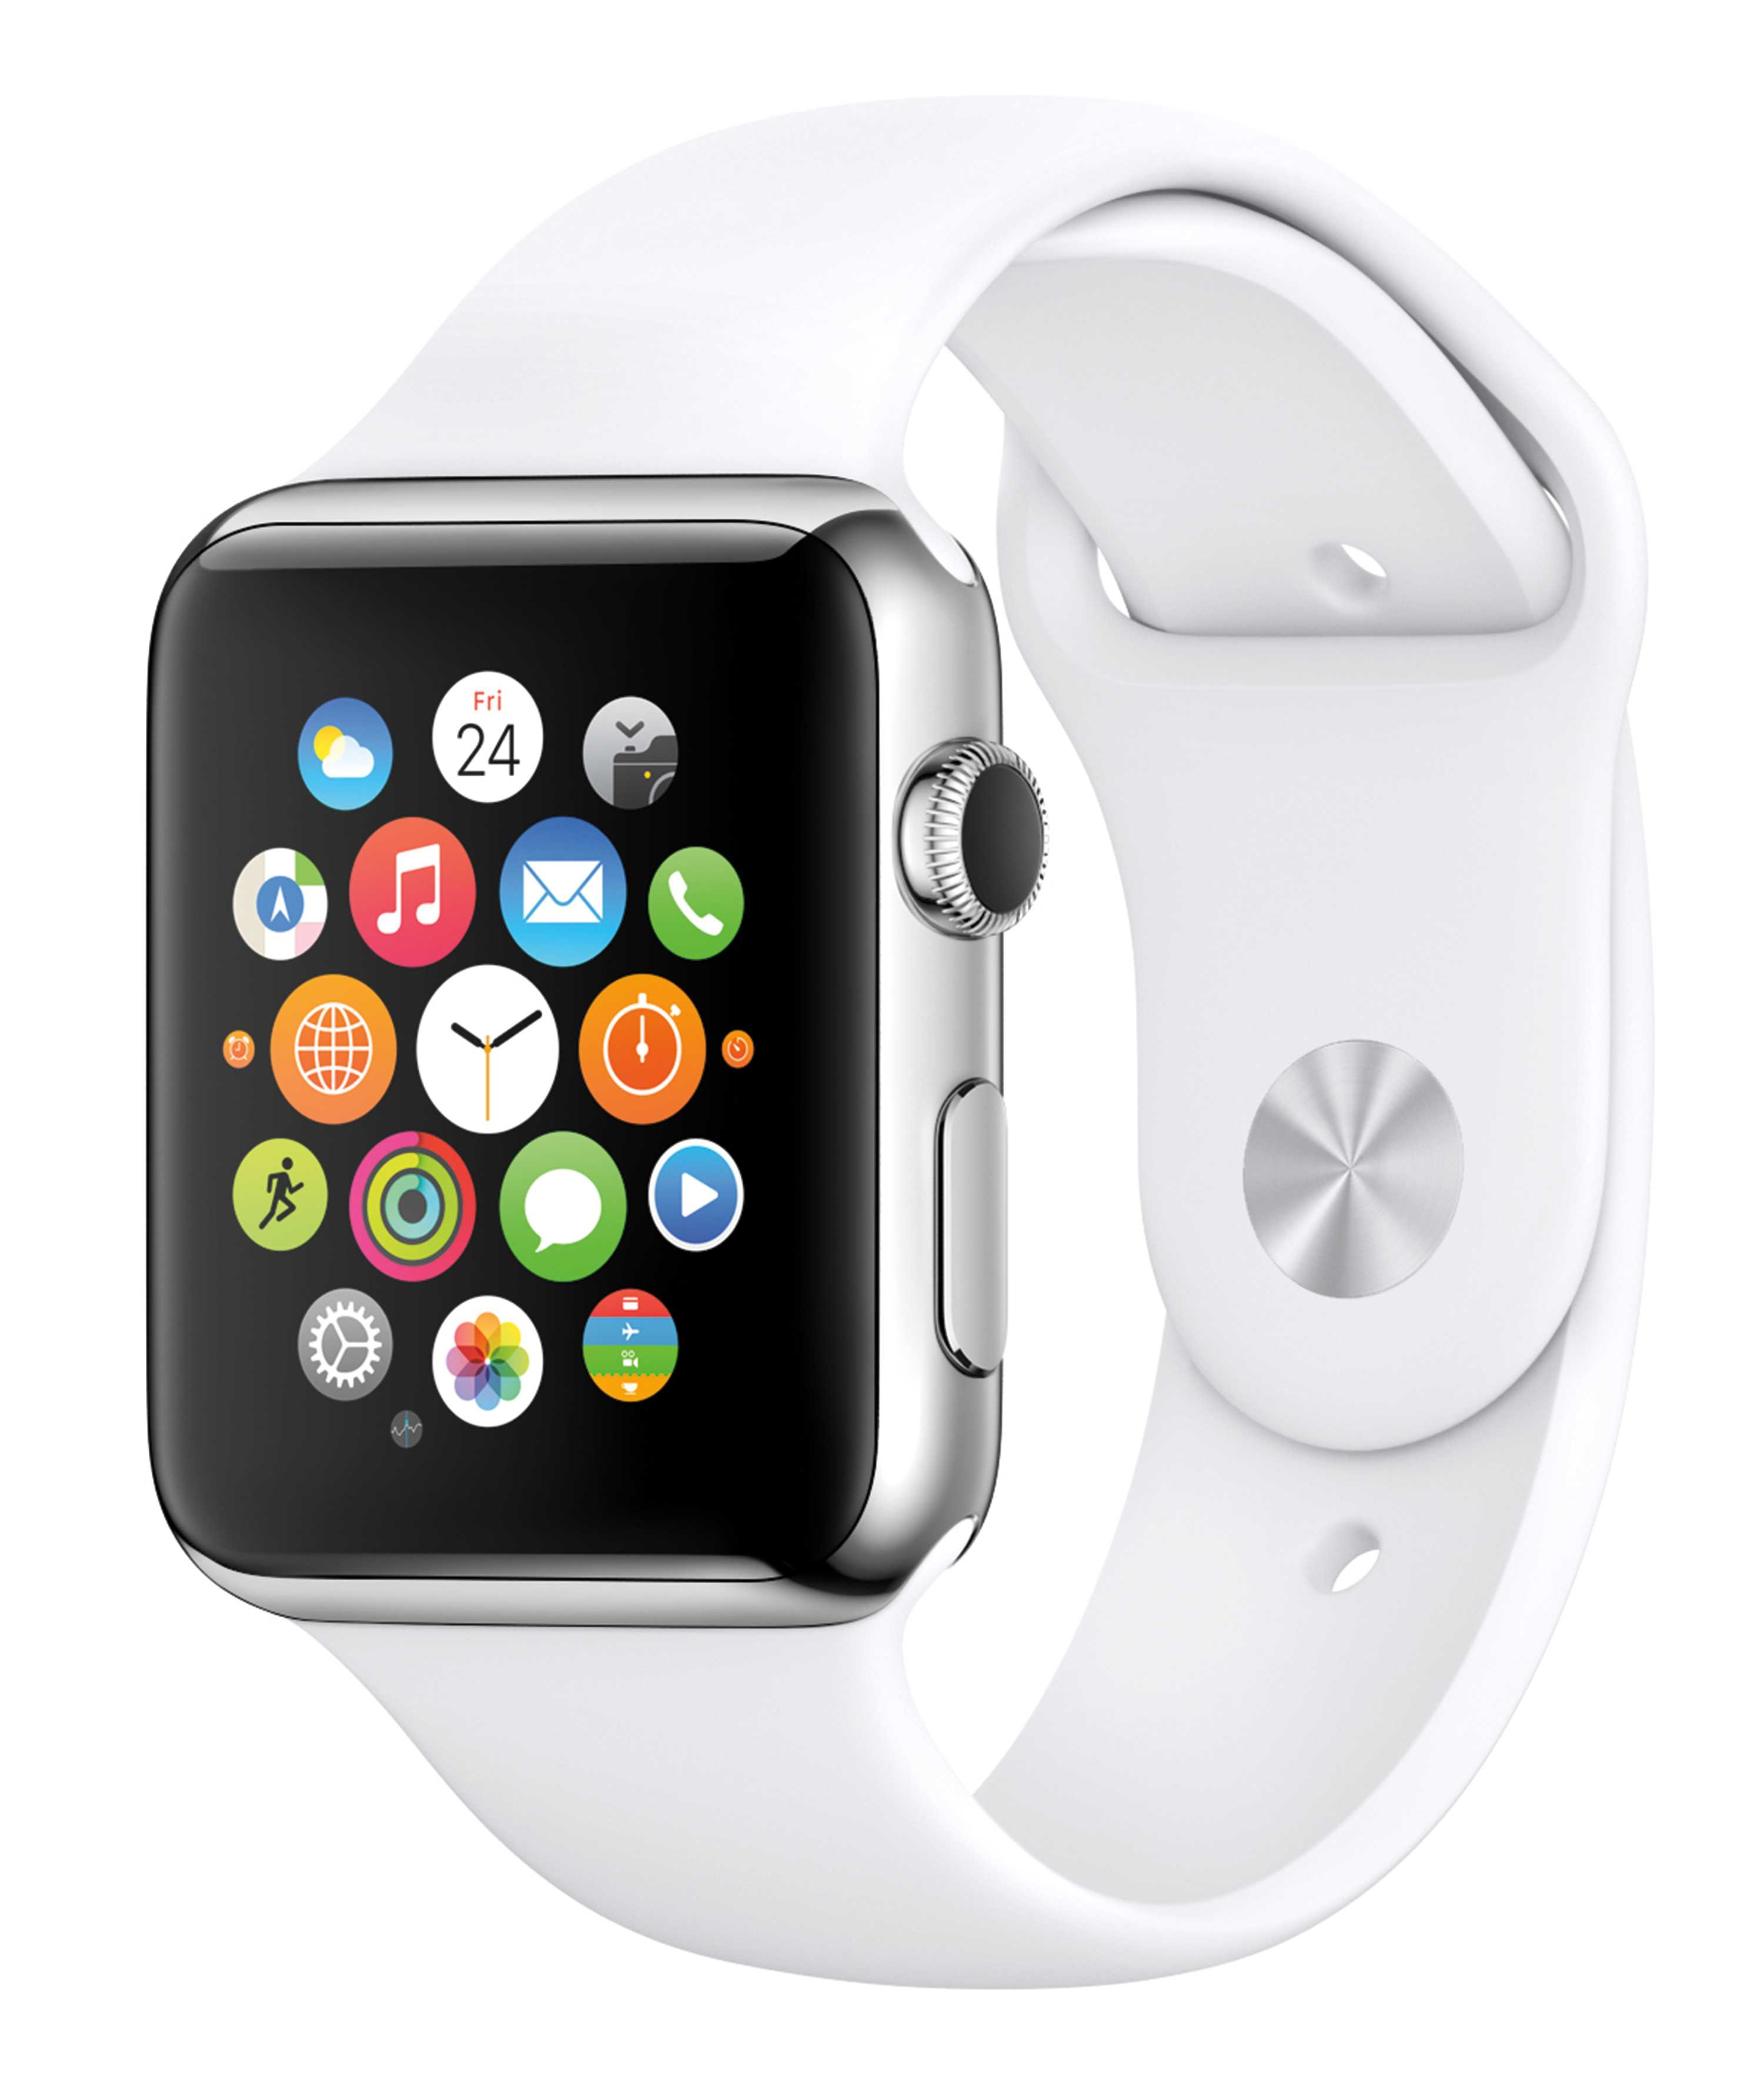 The+Apple+Watch+is+set+to+go+on+sale+April+24.+%28Photo+courtesy+Apple%2FTNS%29